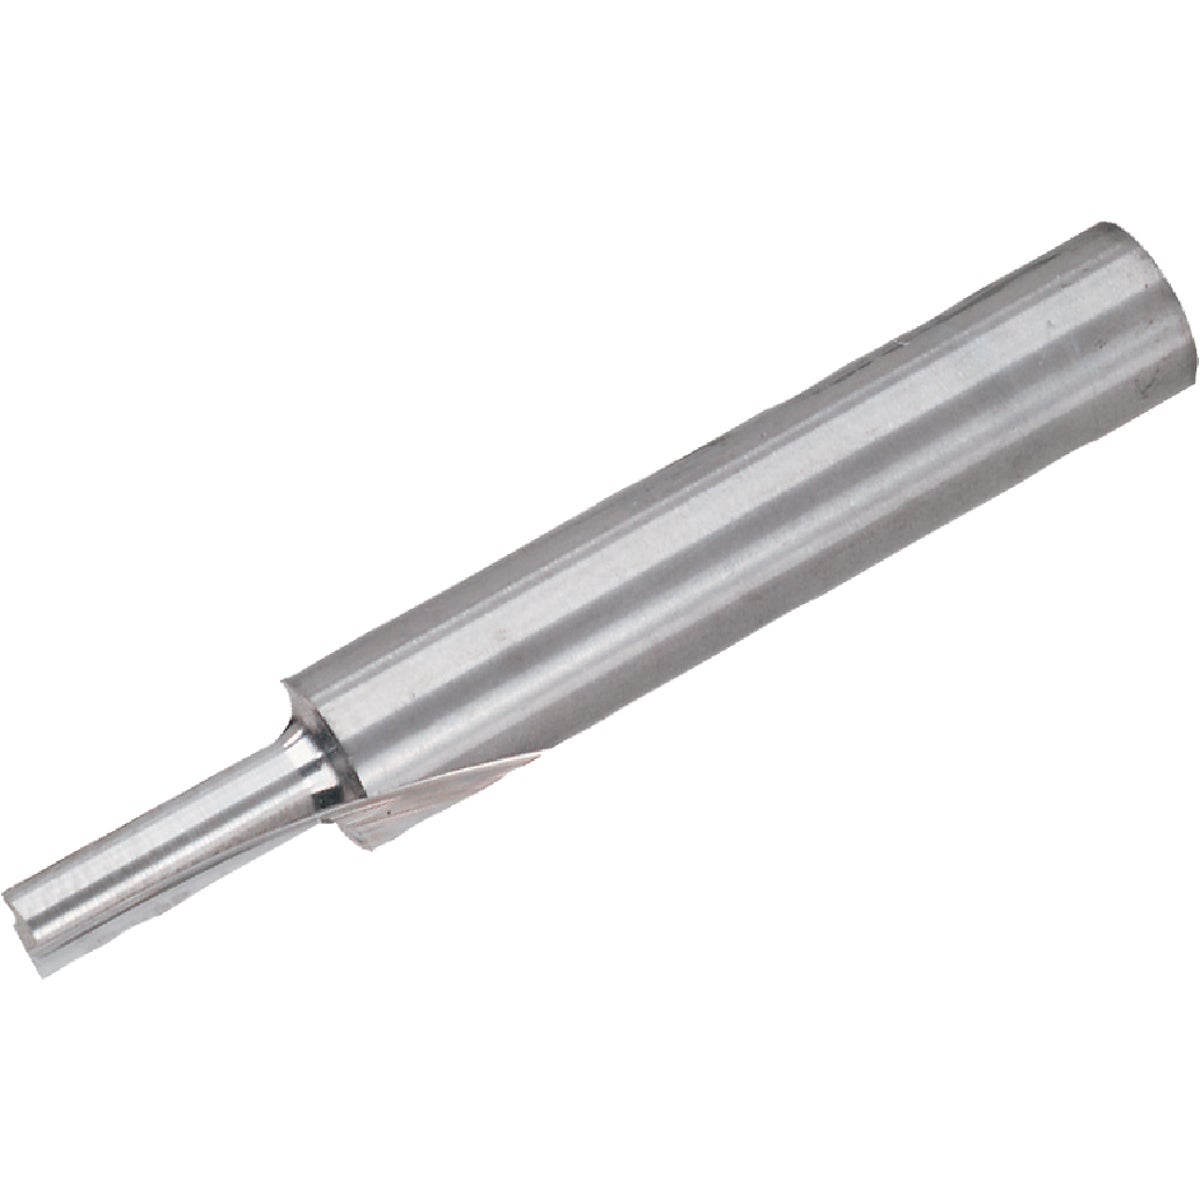 "1/8"" FLUTE STRAIGHT BIT - 04-100 by Freud Inc"